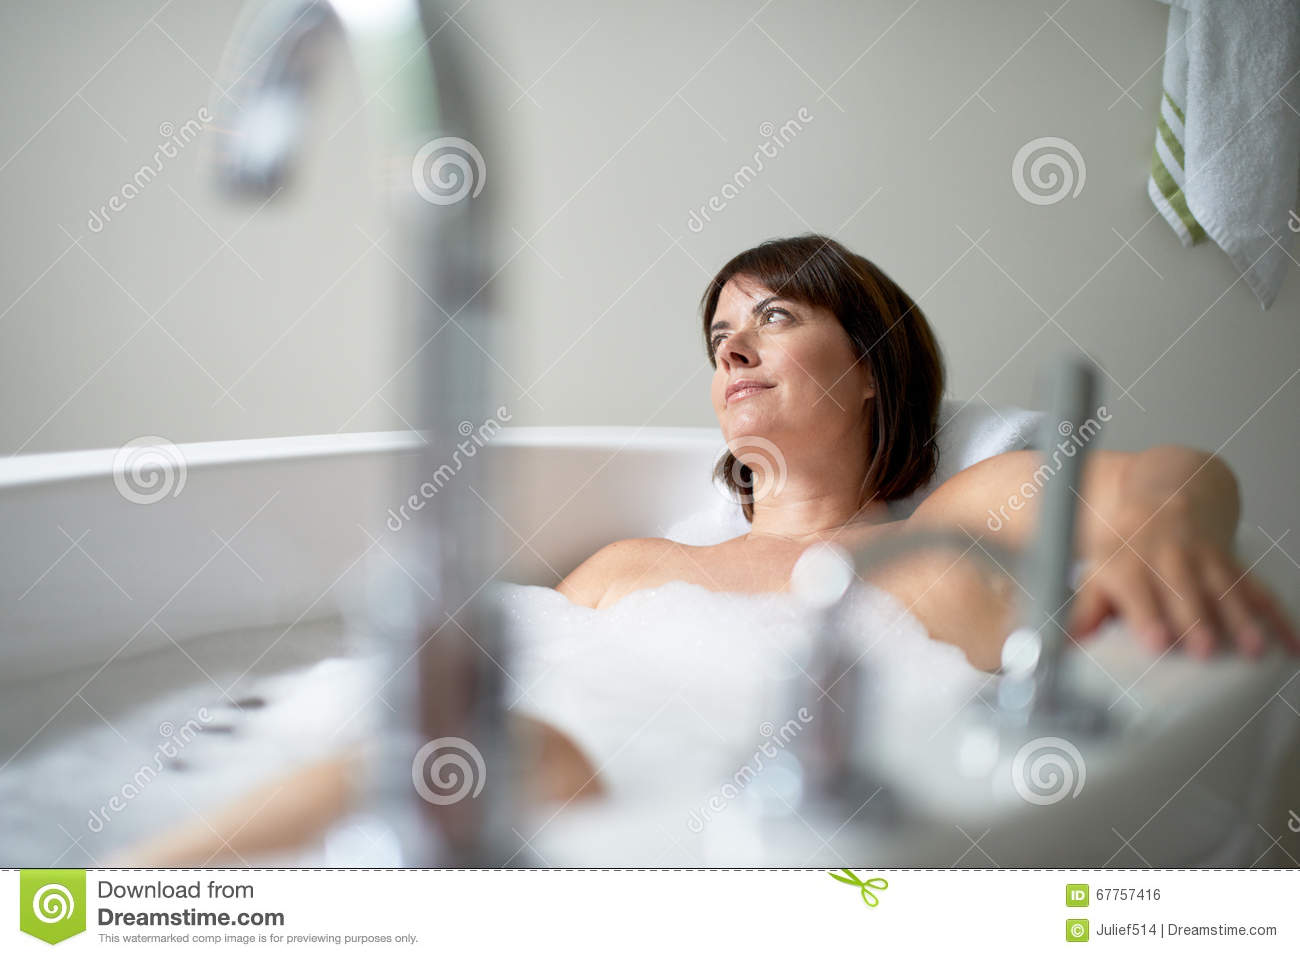 Mature lady bathtube